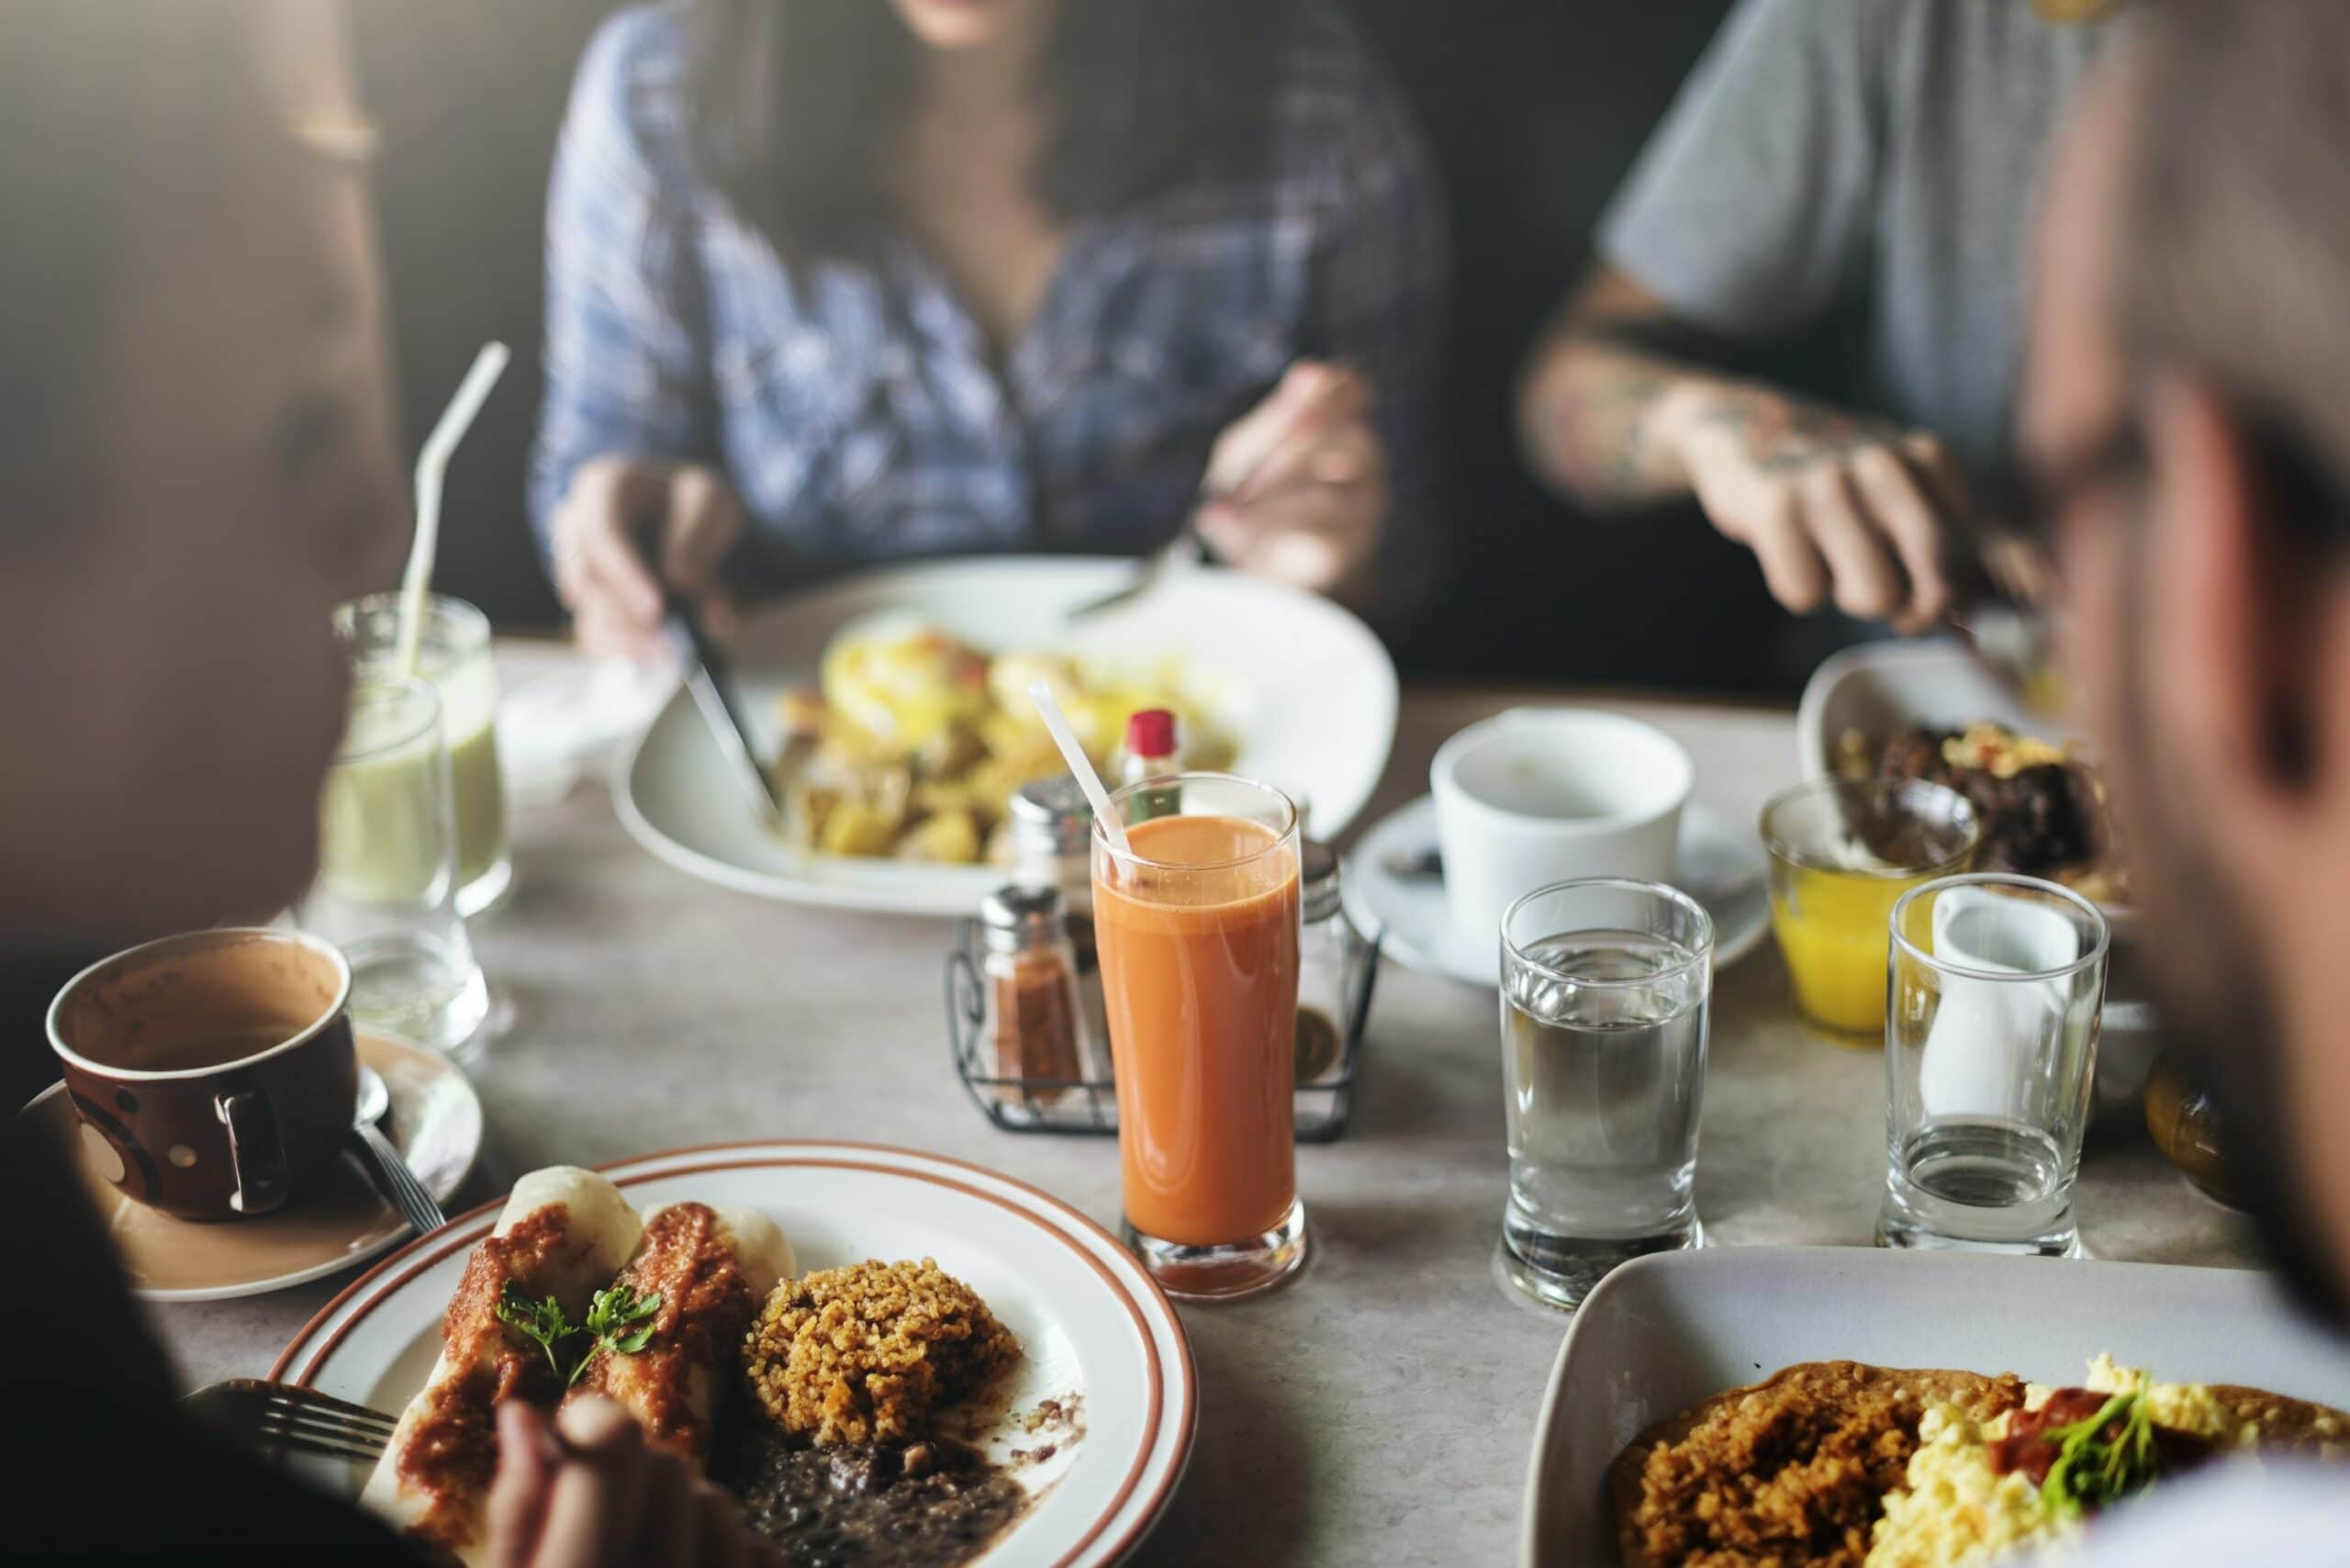 Family Restaurants Healthy Food Swaps To Make